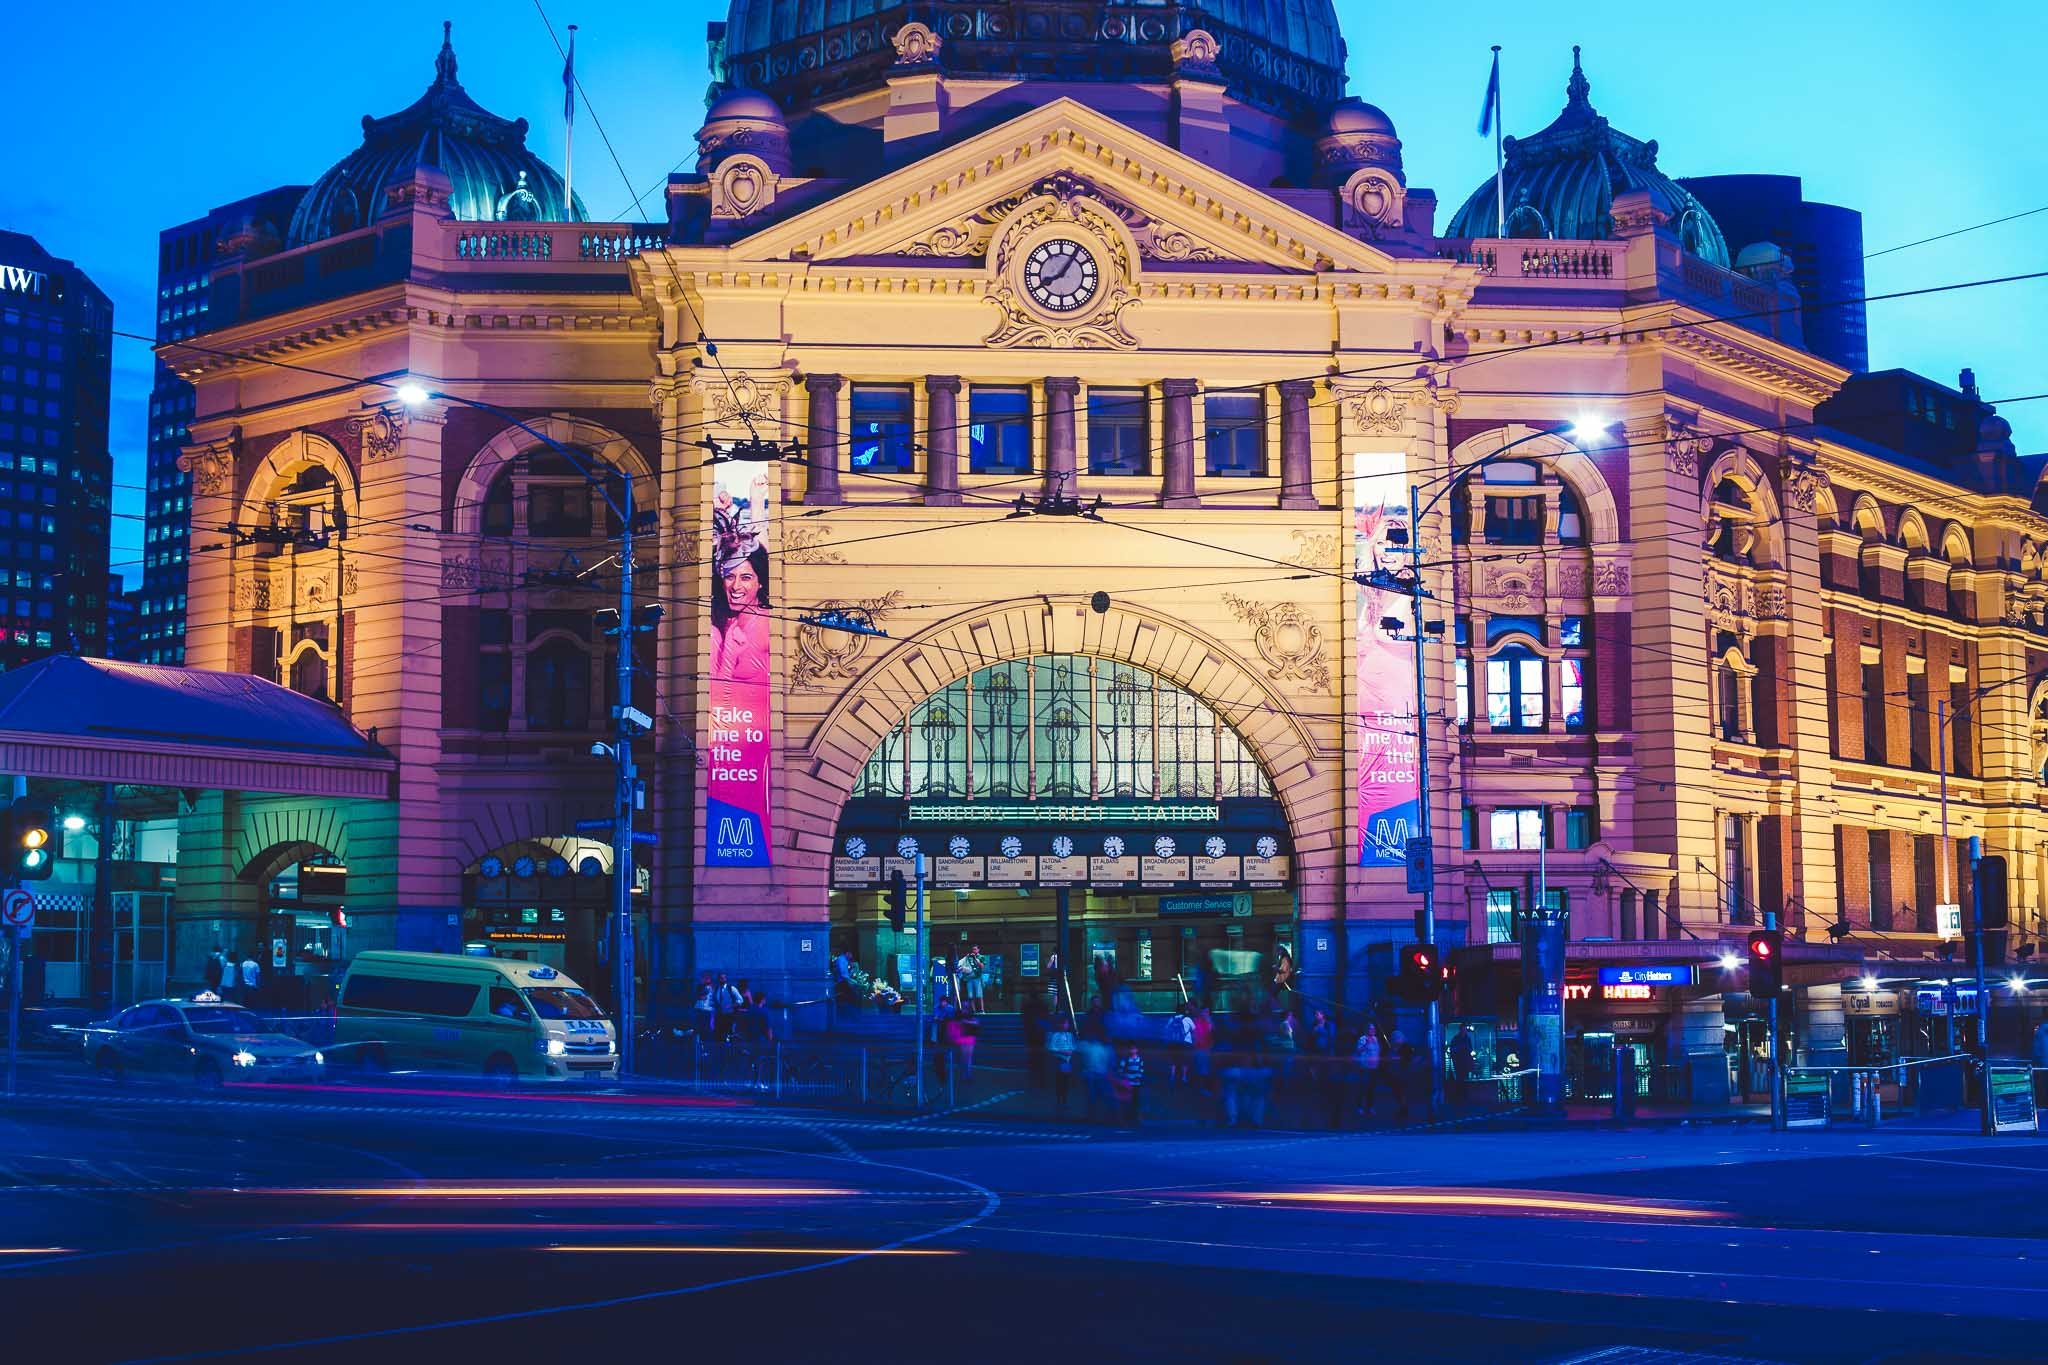 Melbourne Day and night Photography course -